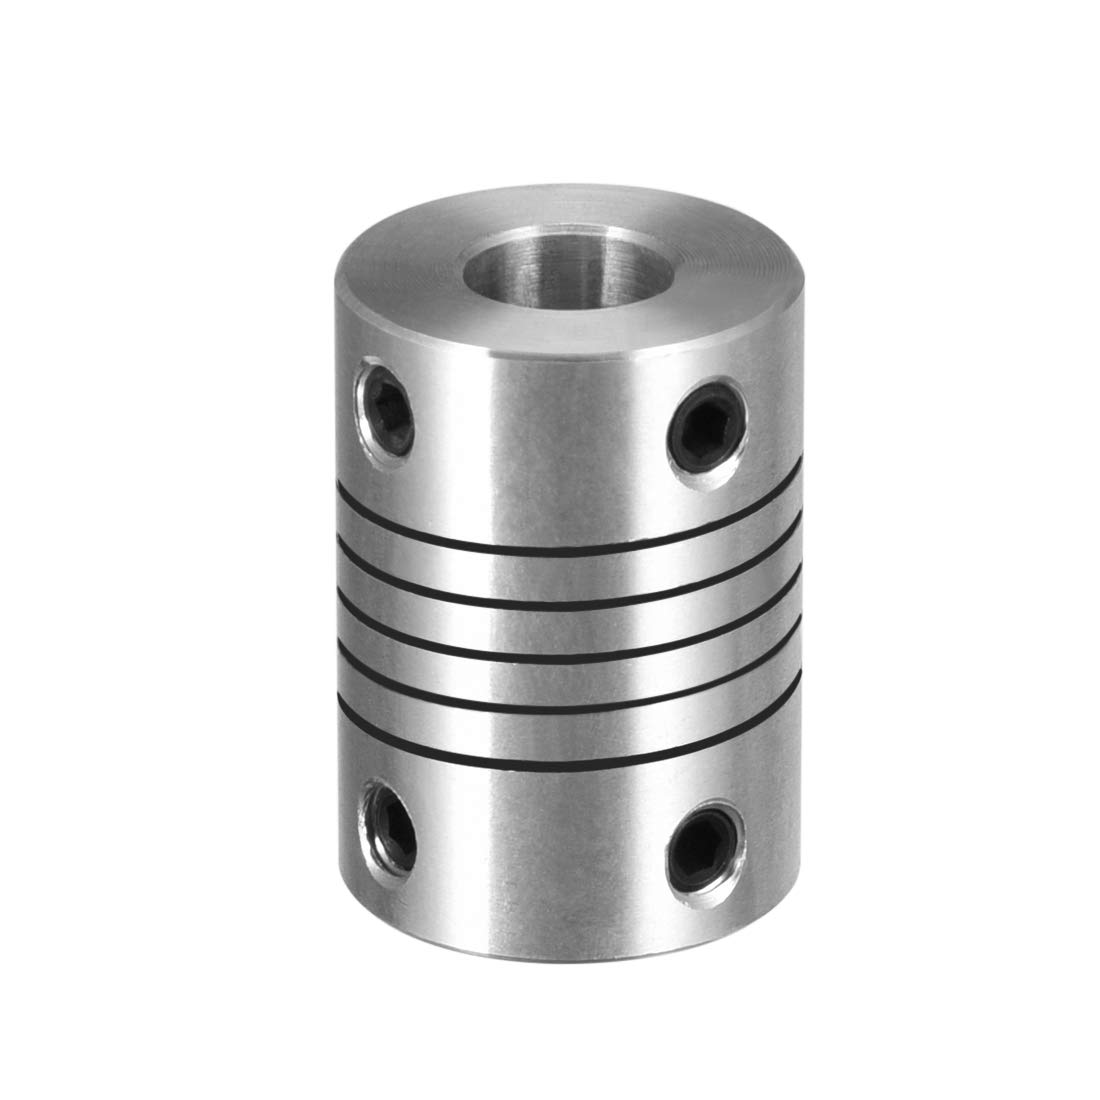 uxcell 10mm to 10mm Stainless Steel Shaft Coupling Flexible Coupler Motor Connector Joint L25xD20 Silver